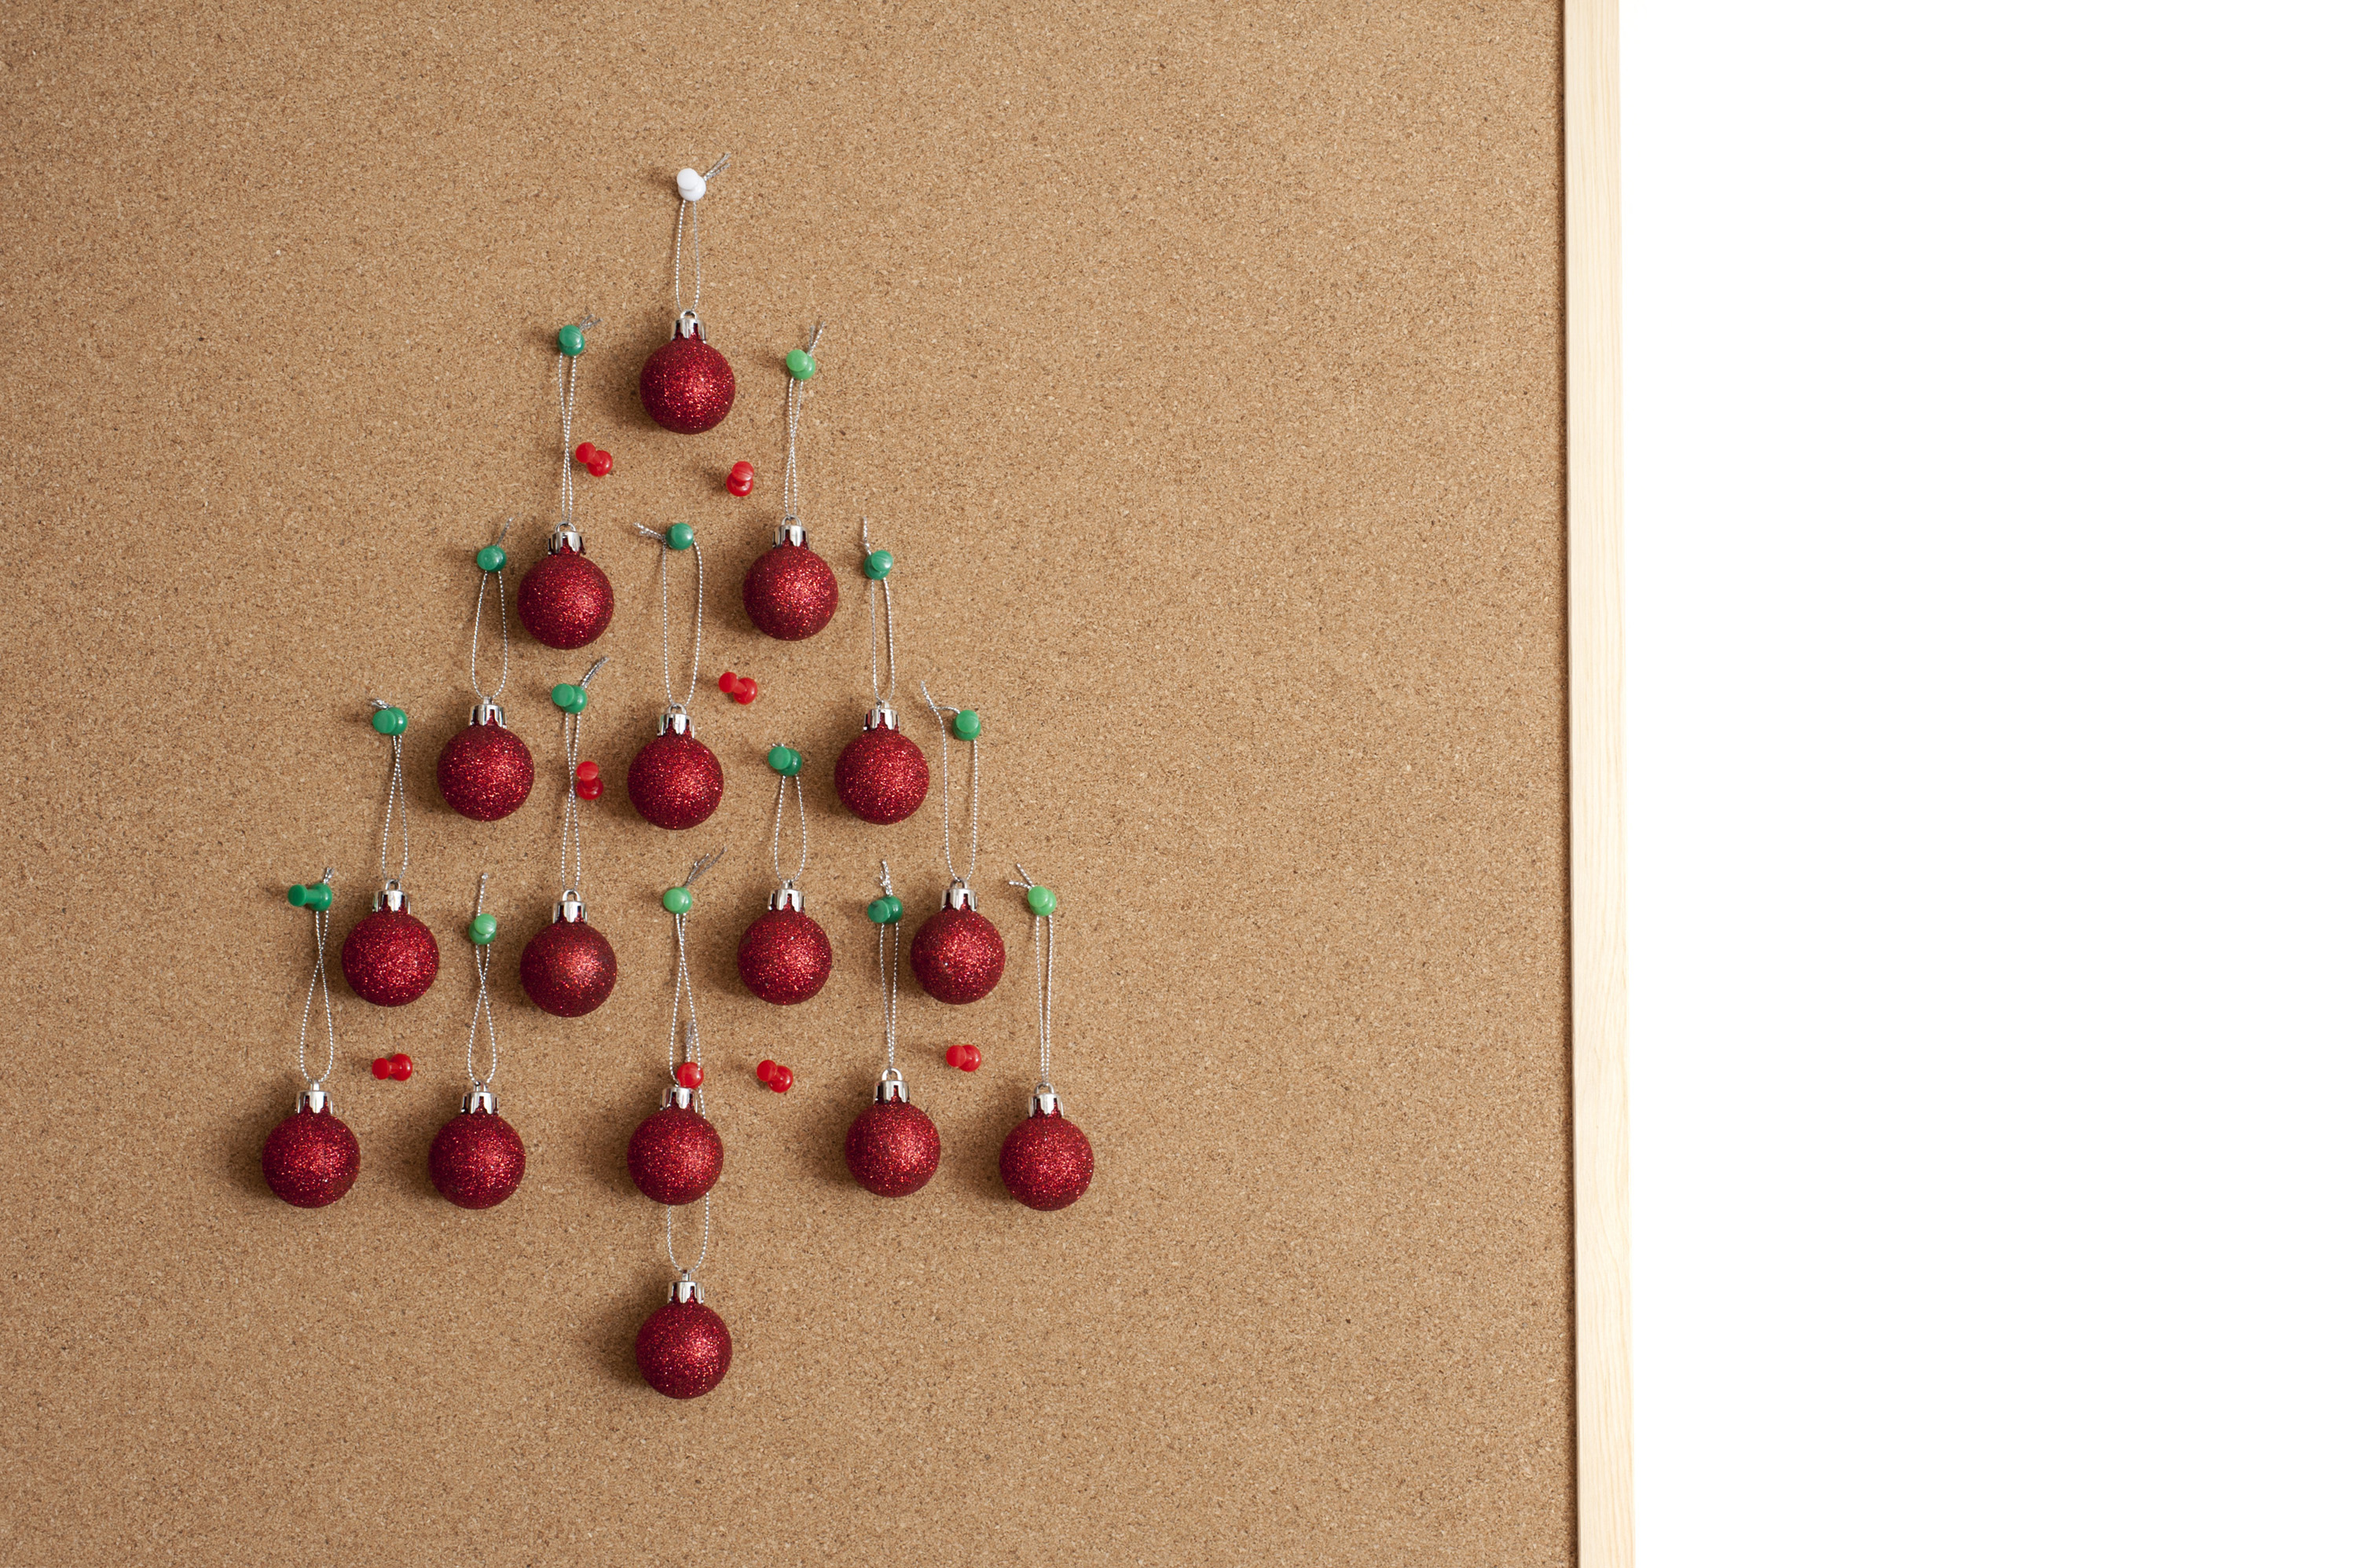 Office Christmas tree balls hanging on cork noticeboard board